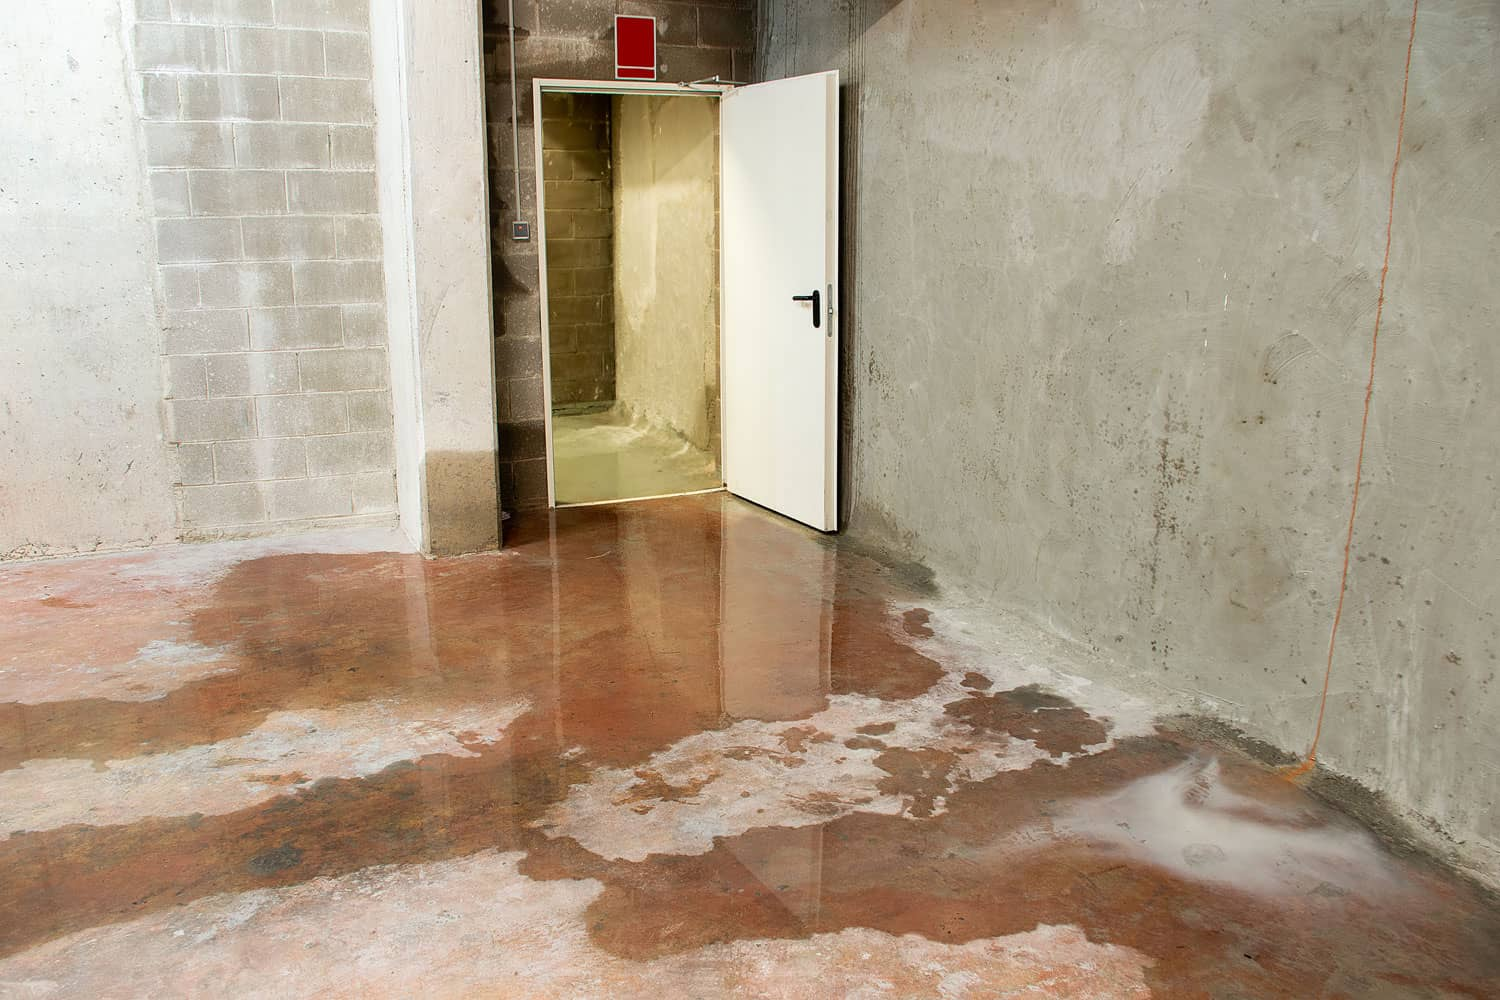 A wet basement due to leaking on the walls